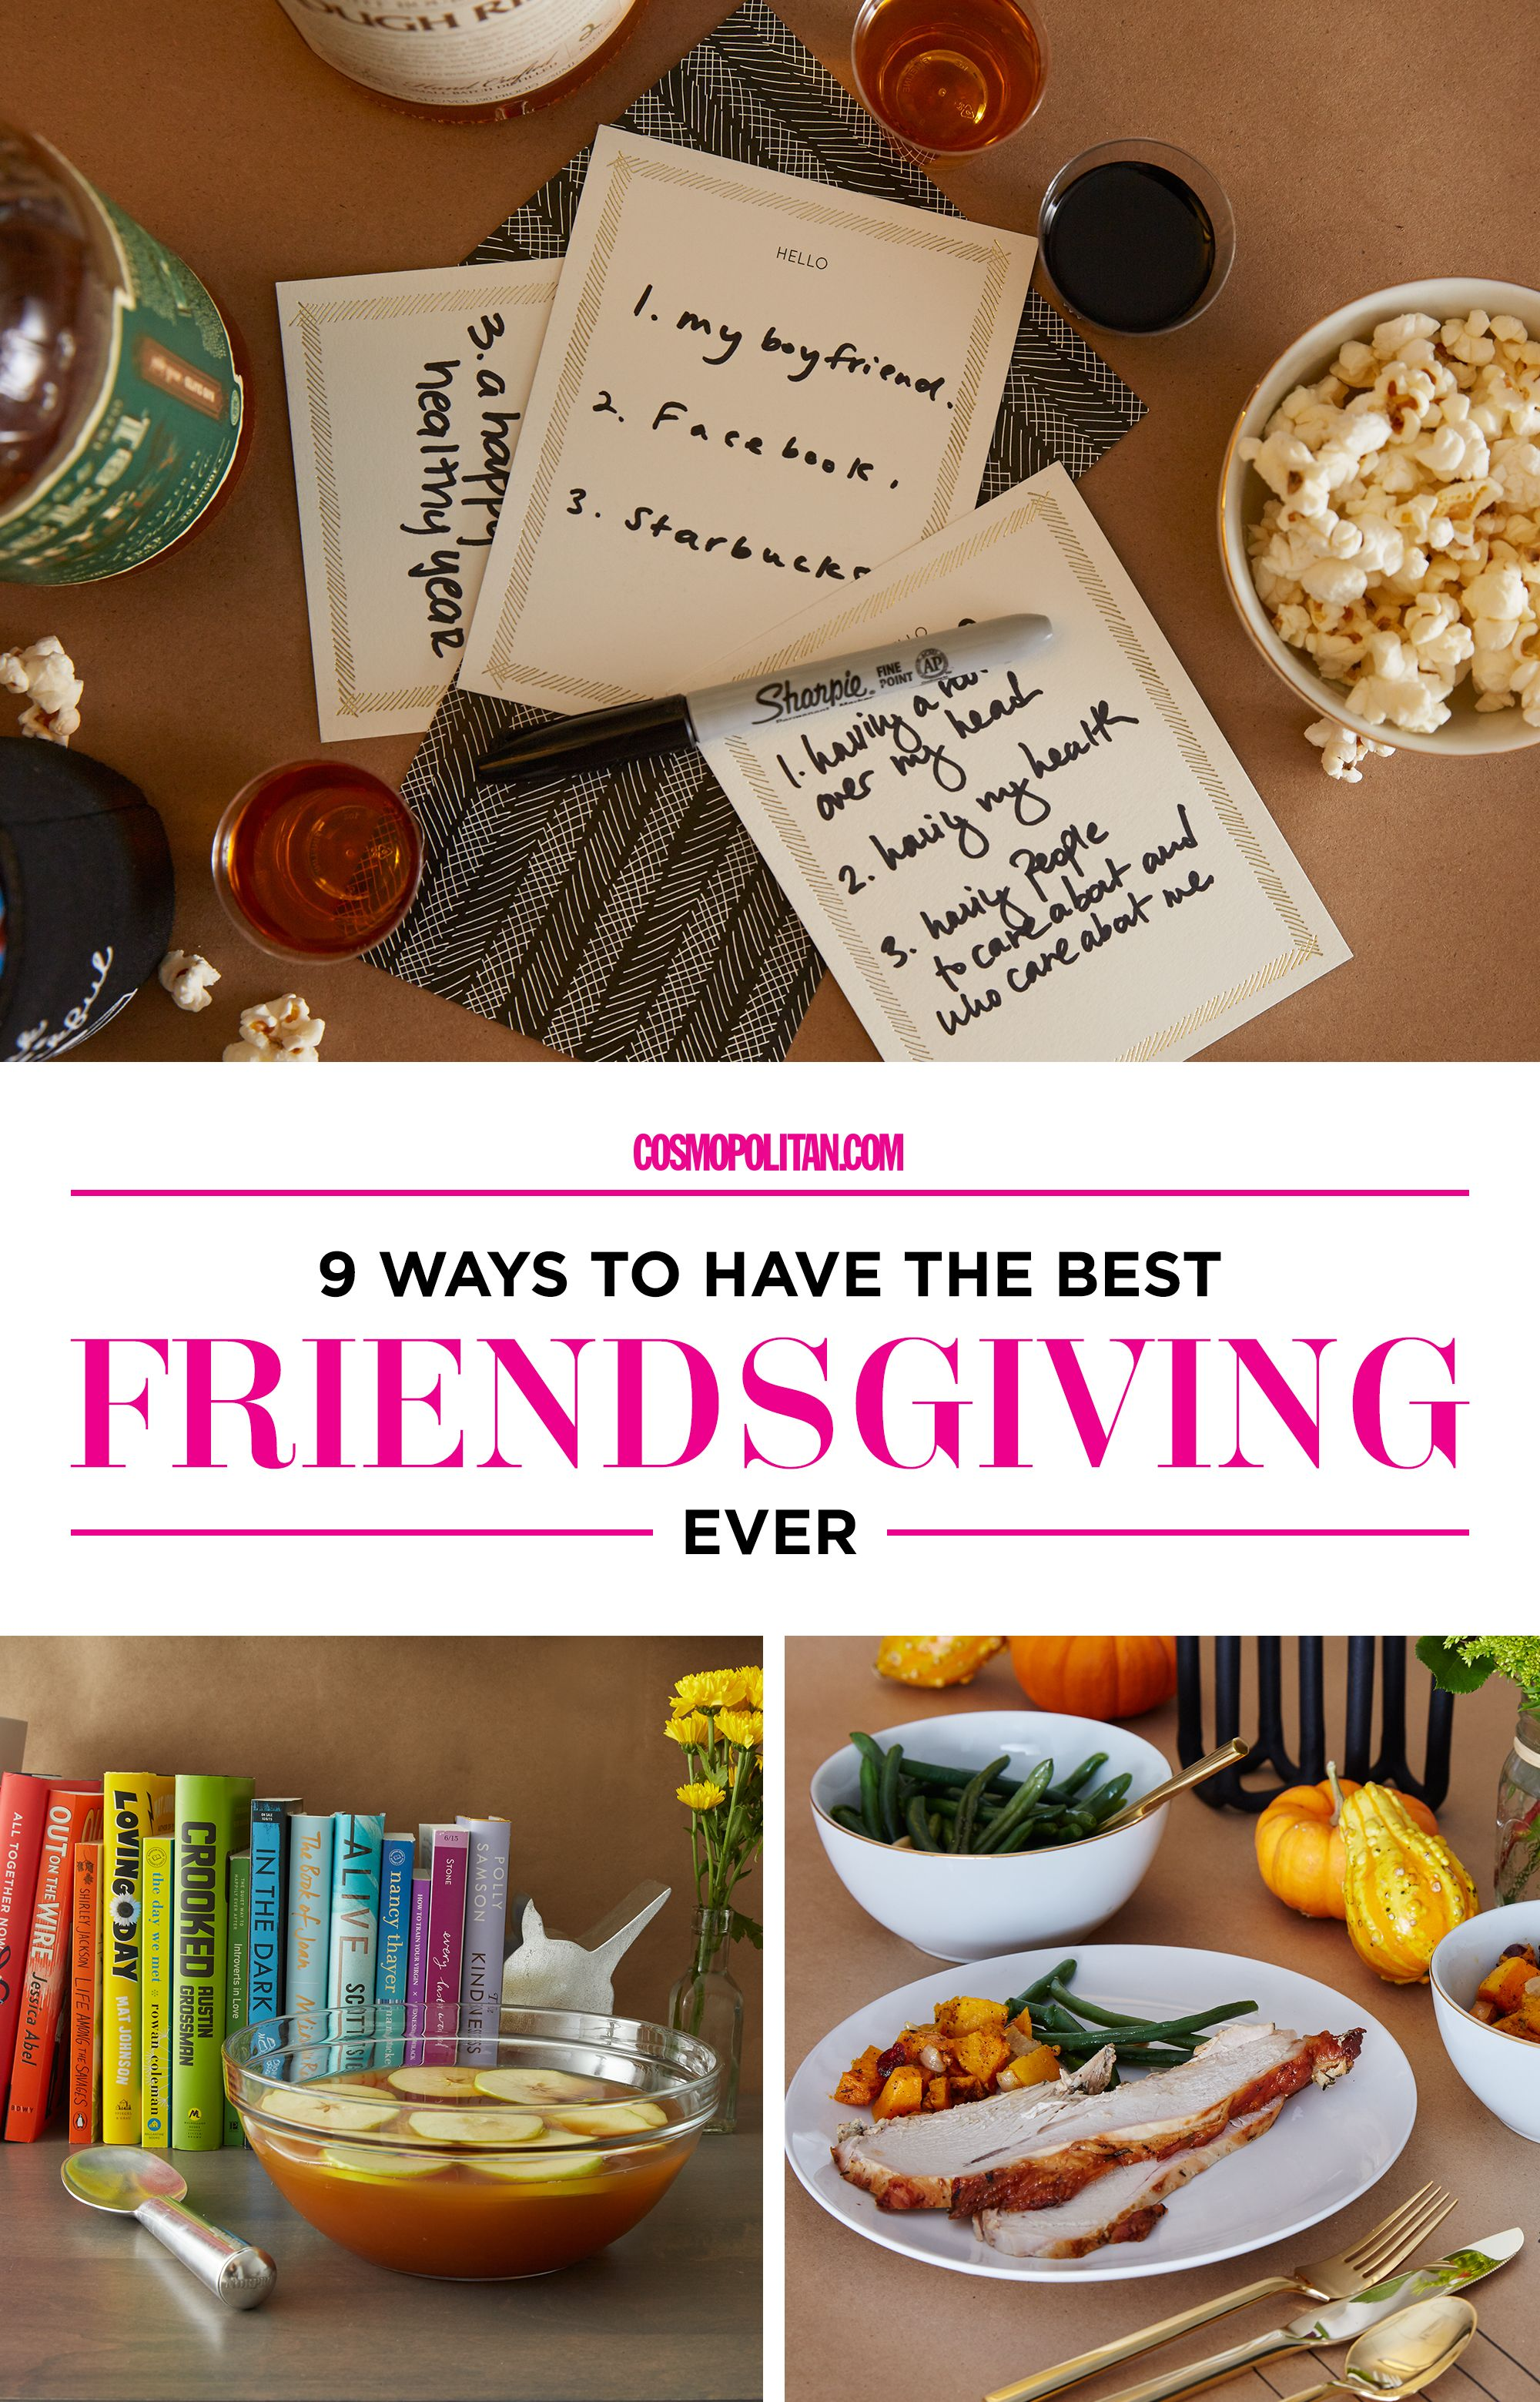 How to do friendsgiving